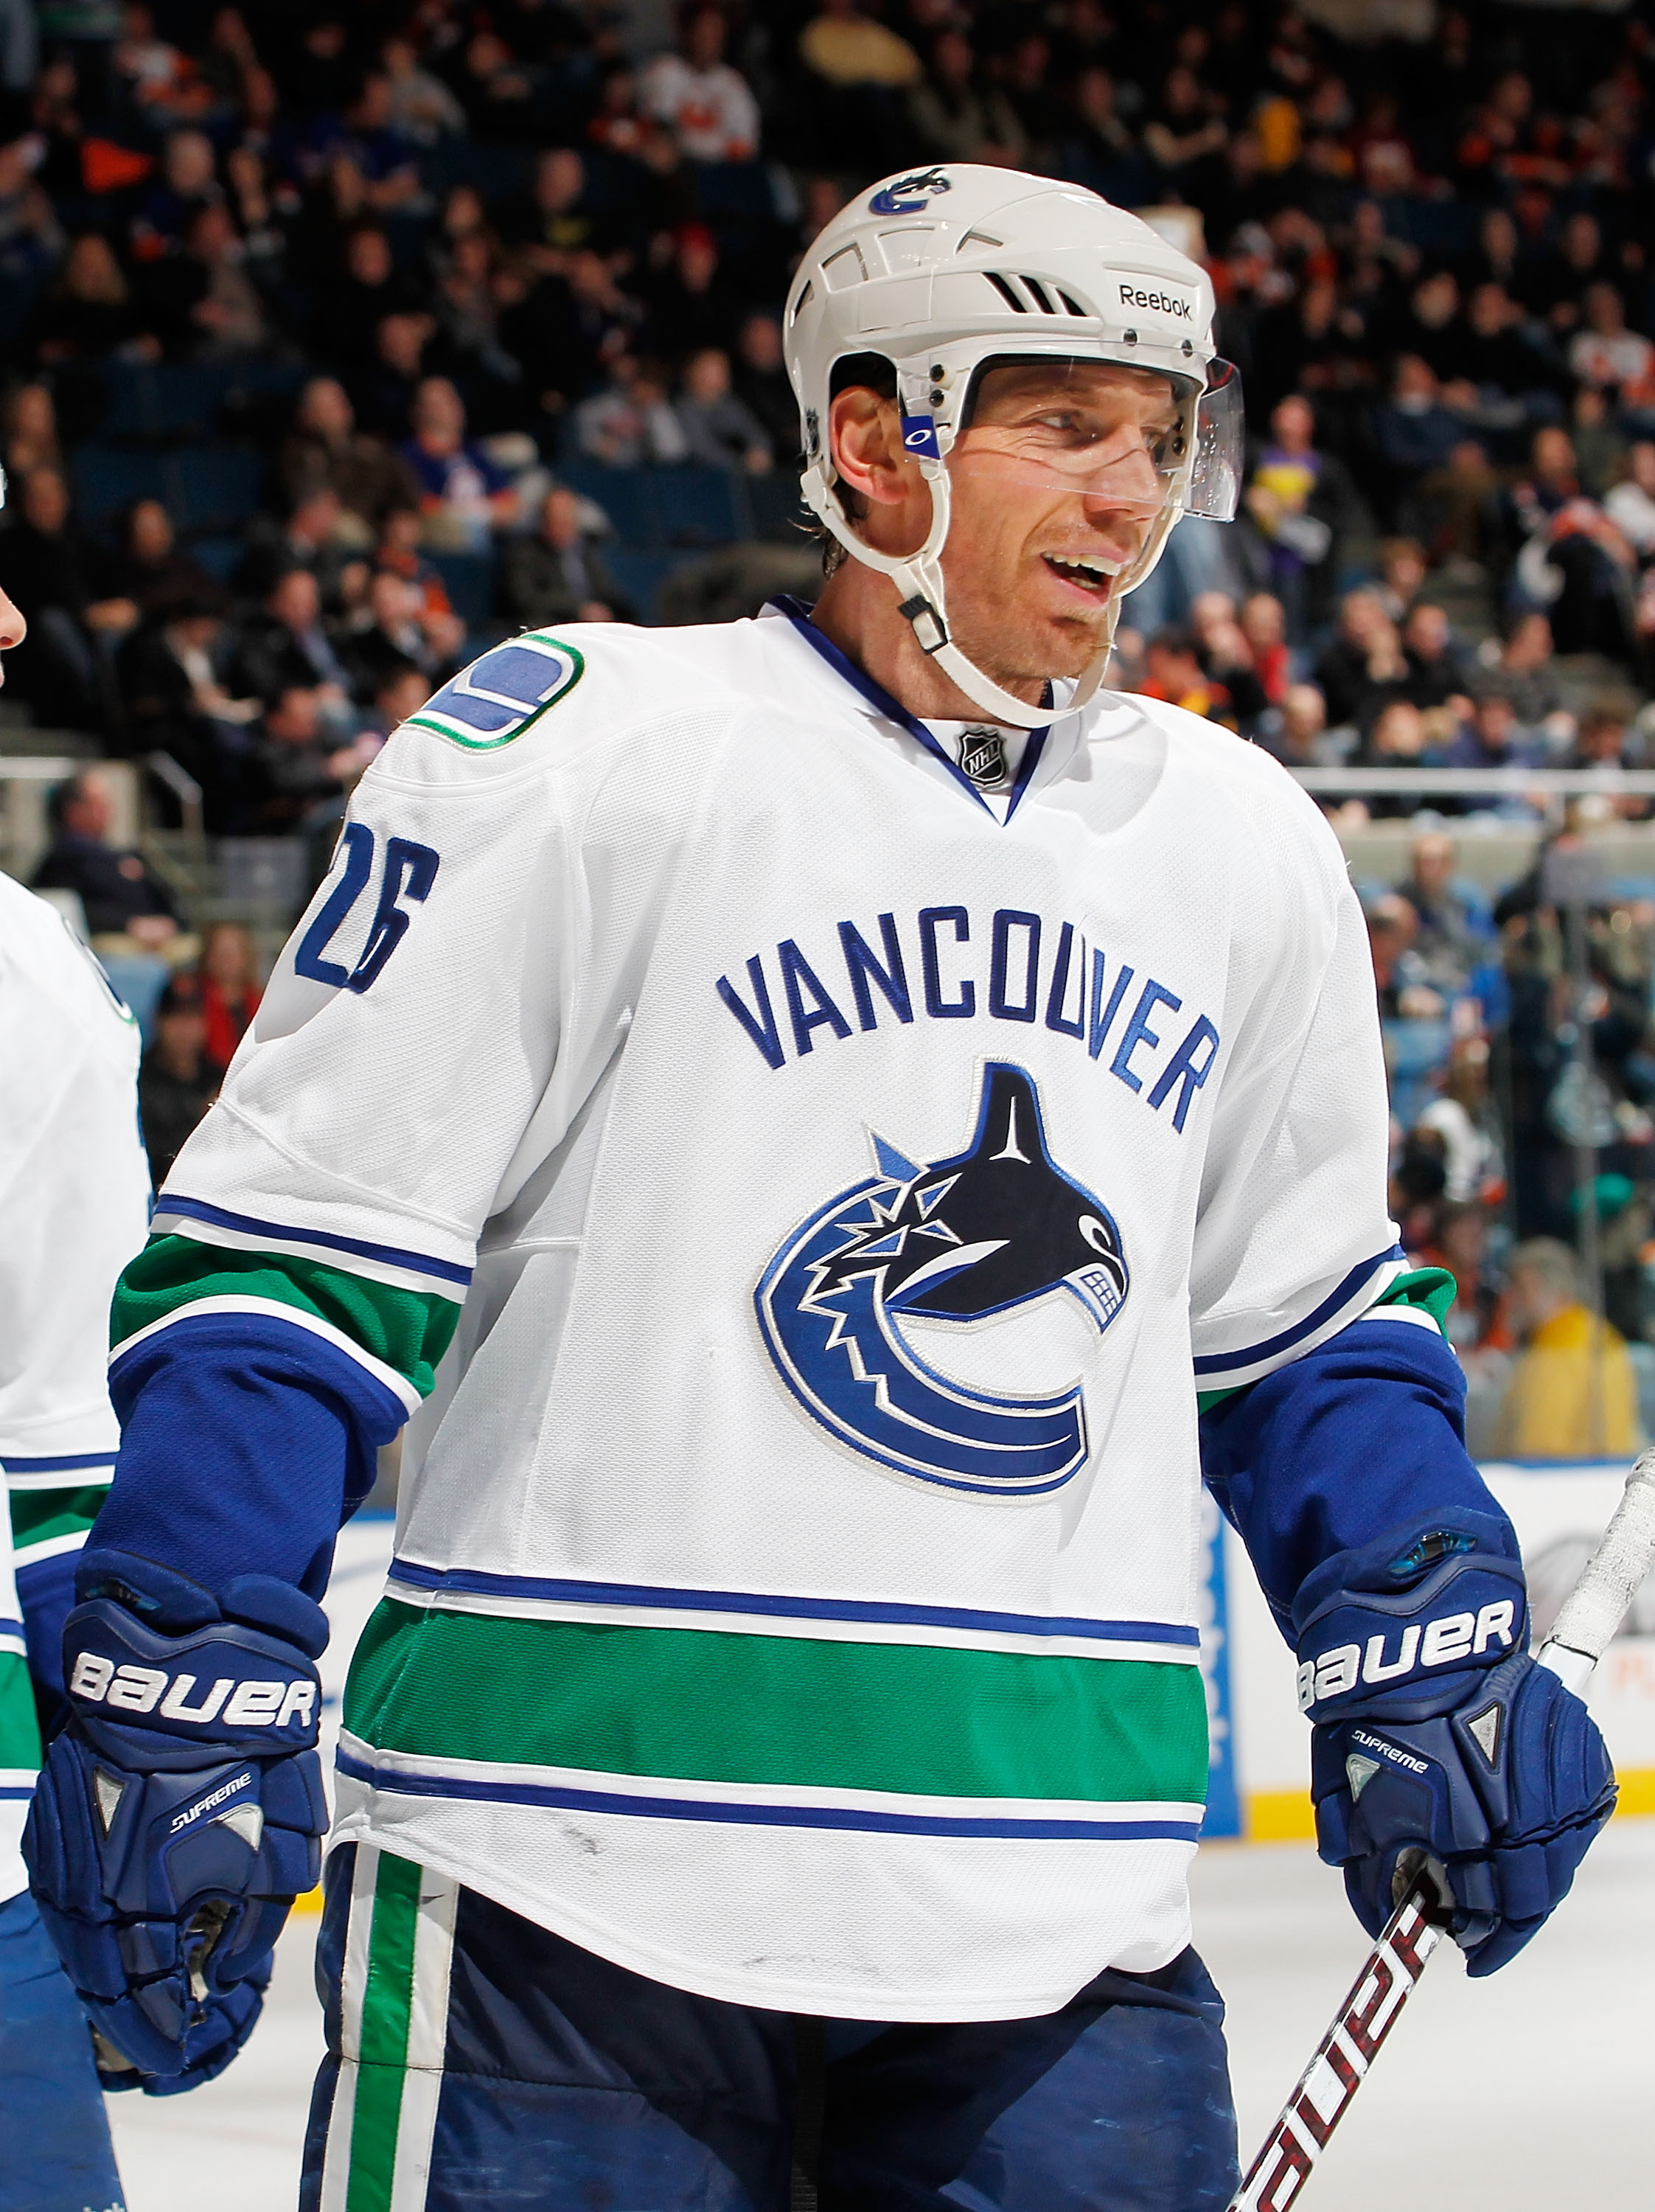 UNIONDALE, NY - JANUARY 11:  Mikael Samuelsson #26 of the Vancouver Canucks  sksmiles after a Vancouver goal during an NHL game against the New York Islanders at Nassau Coliseum on January 11, 2011 in Uniondale, New York.  (Photo by Paul Bereswill/Getty I